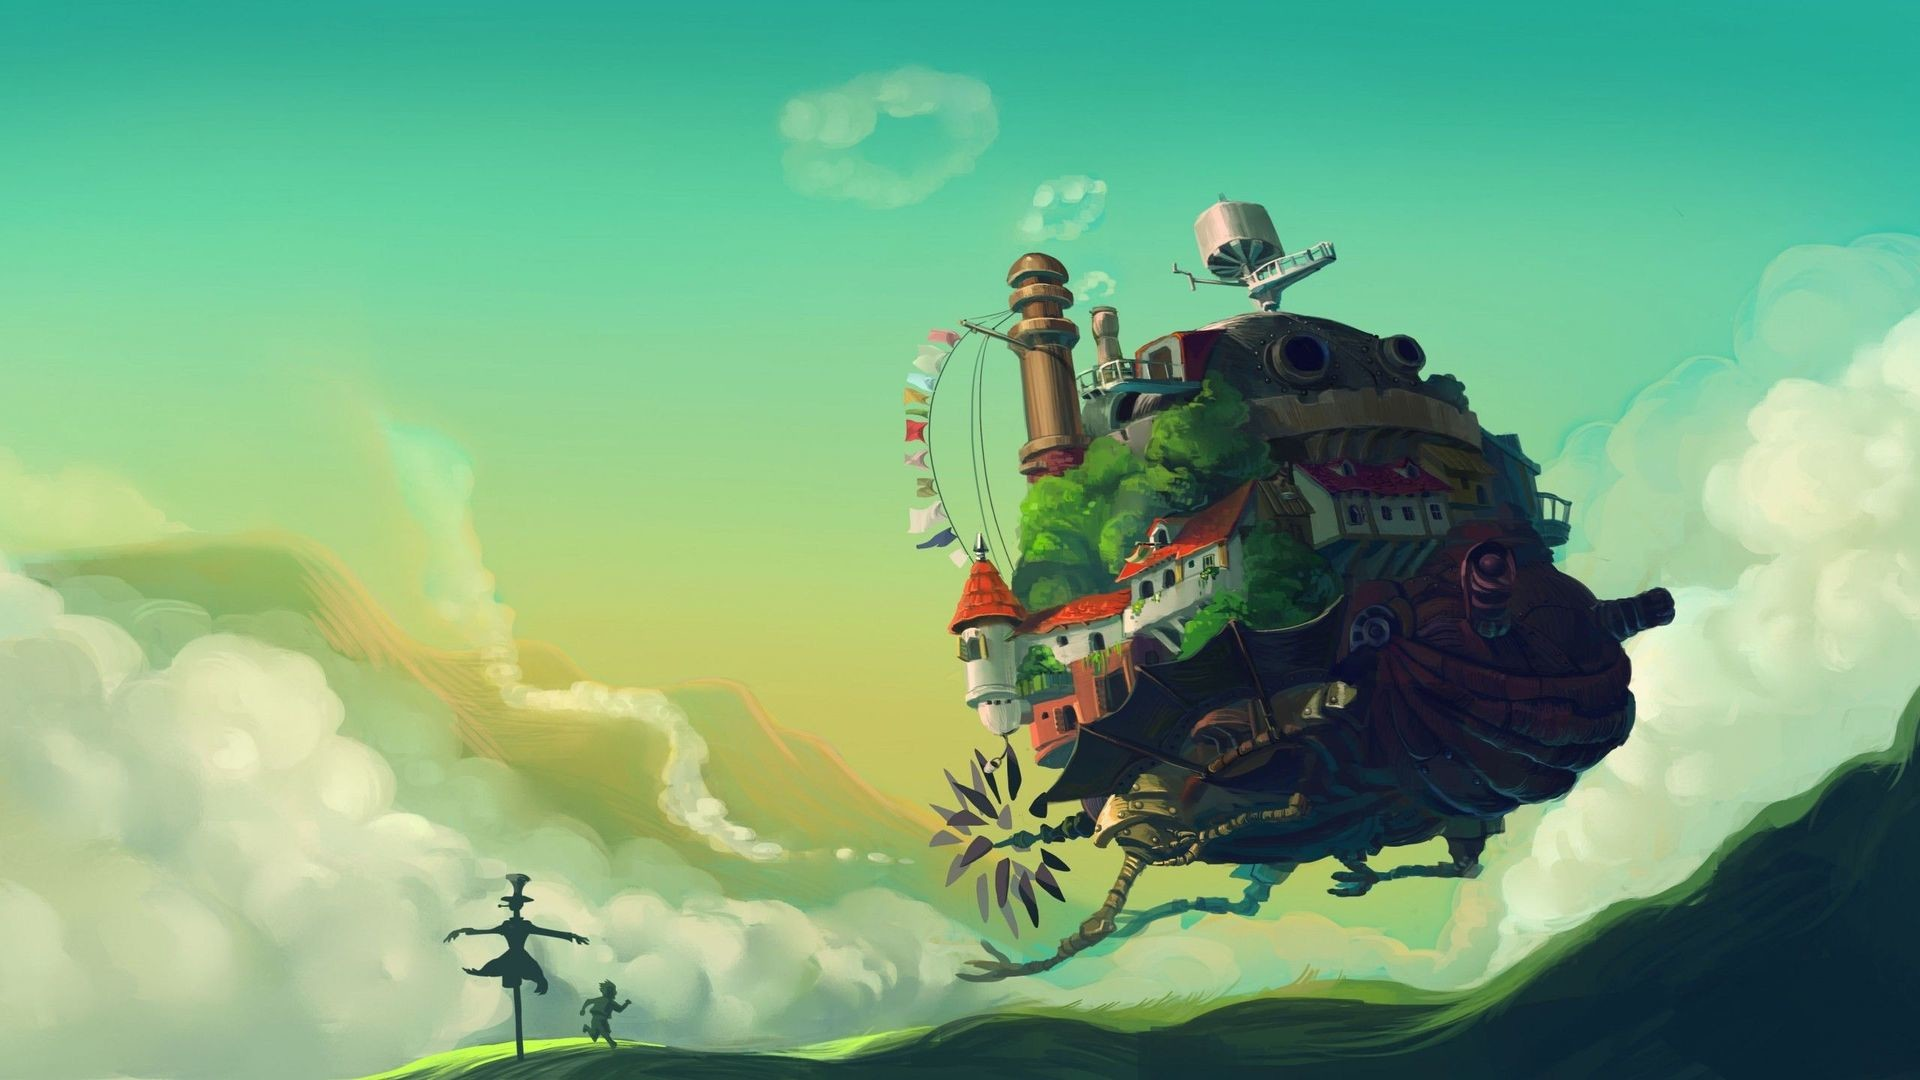 1920x1080 DOWNLOAD · Facebook Twitter Google+ Pinterest LinkedIn Reddit Delicious  StumbleUpon Tumblr Share. Tags: Howls Moving Castle HD Wallpaper